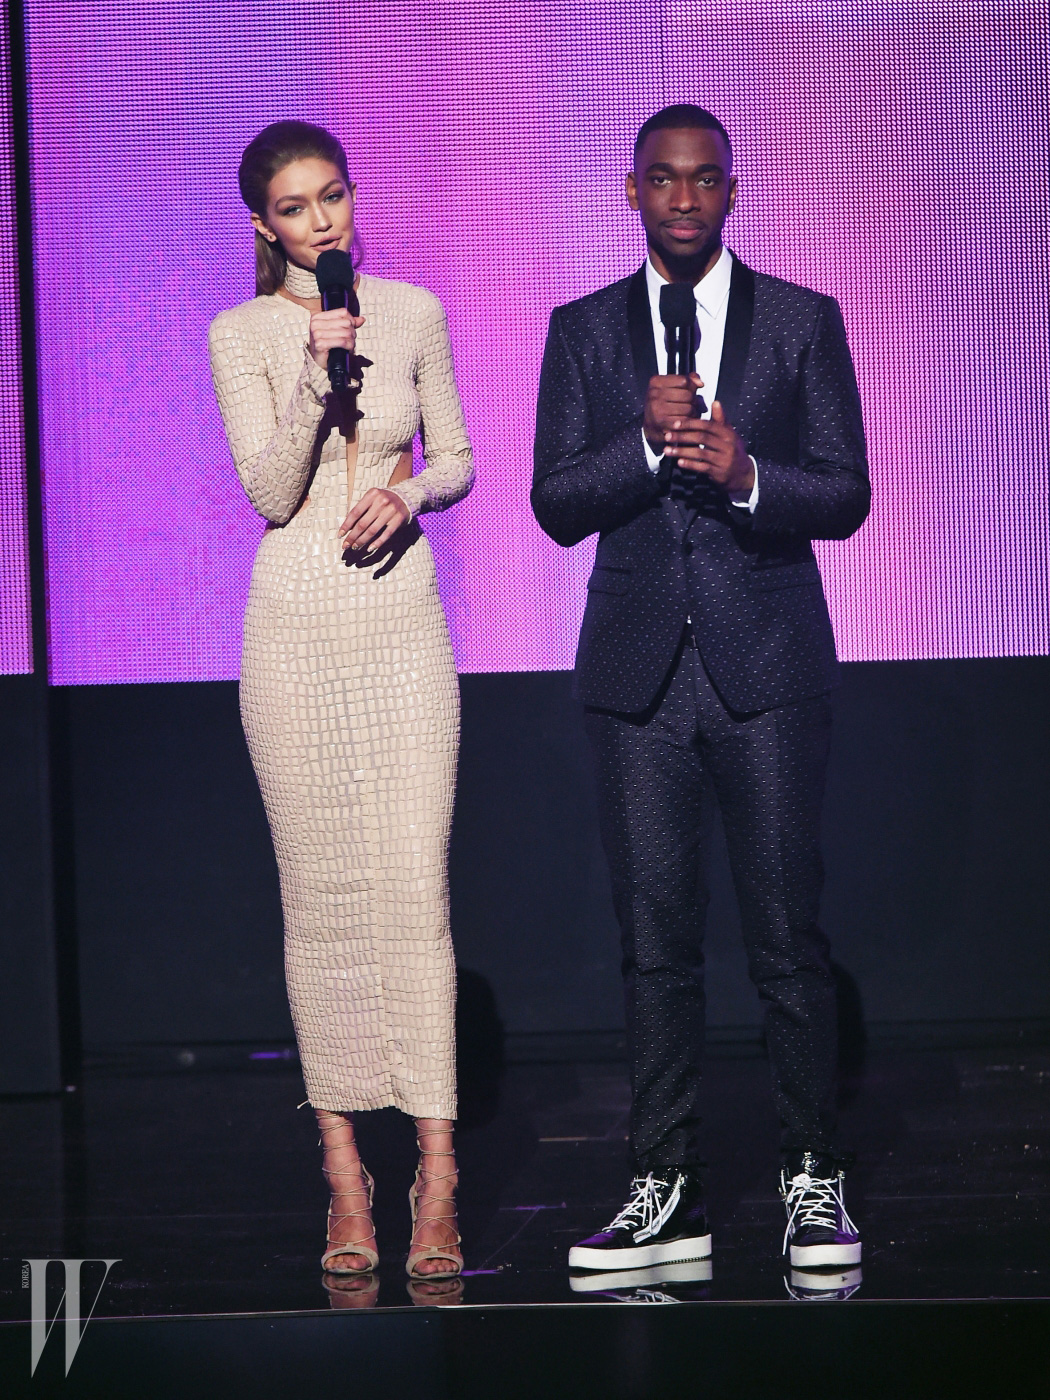 LOS ANGELES, CA - NOVEMBER 20:  Co-hosts Gigi Hadid (L) and Jay Pharoah speak onstage during the 2016 American Music Awards at Microsoft Theater on November 20, 2016 in Los Angeles, California.  (Photo by Kevin Winter/Getty Images)